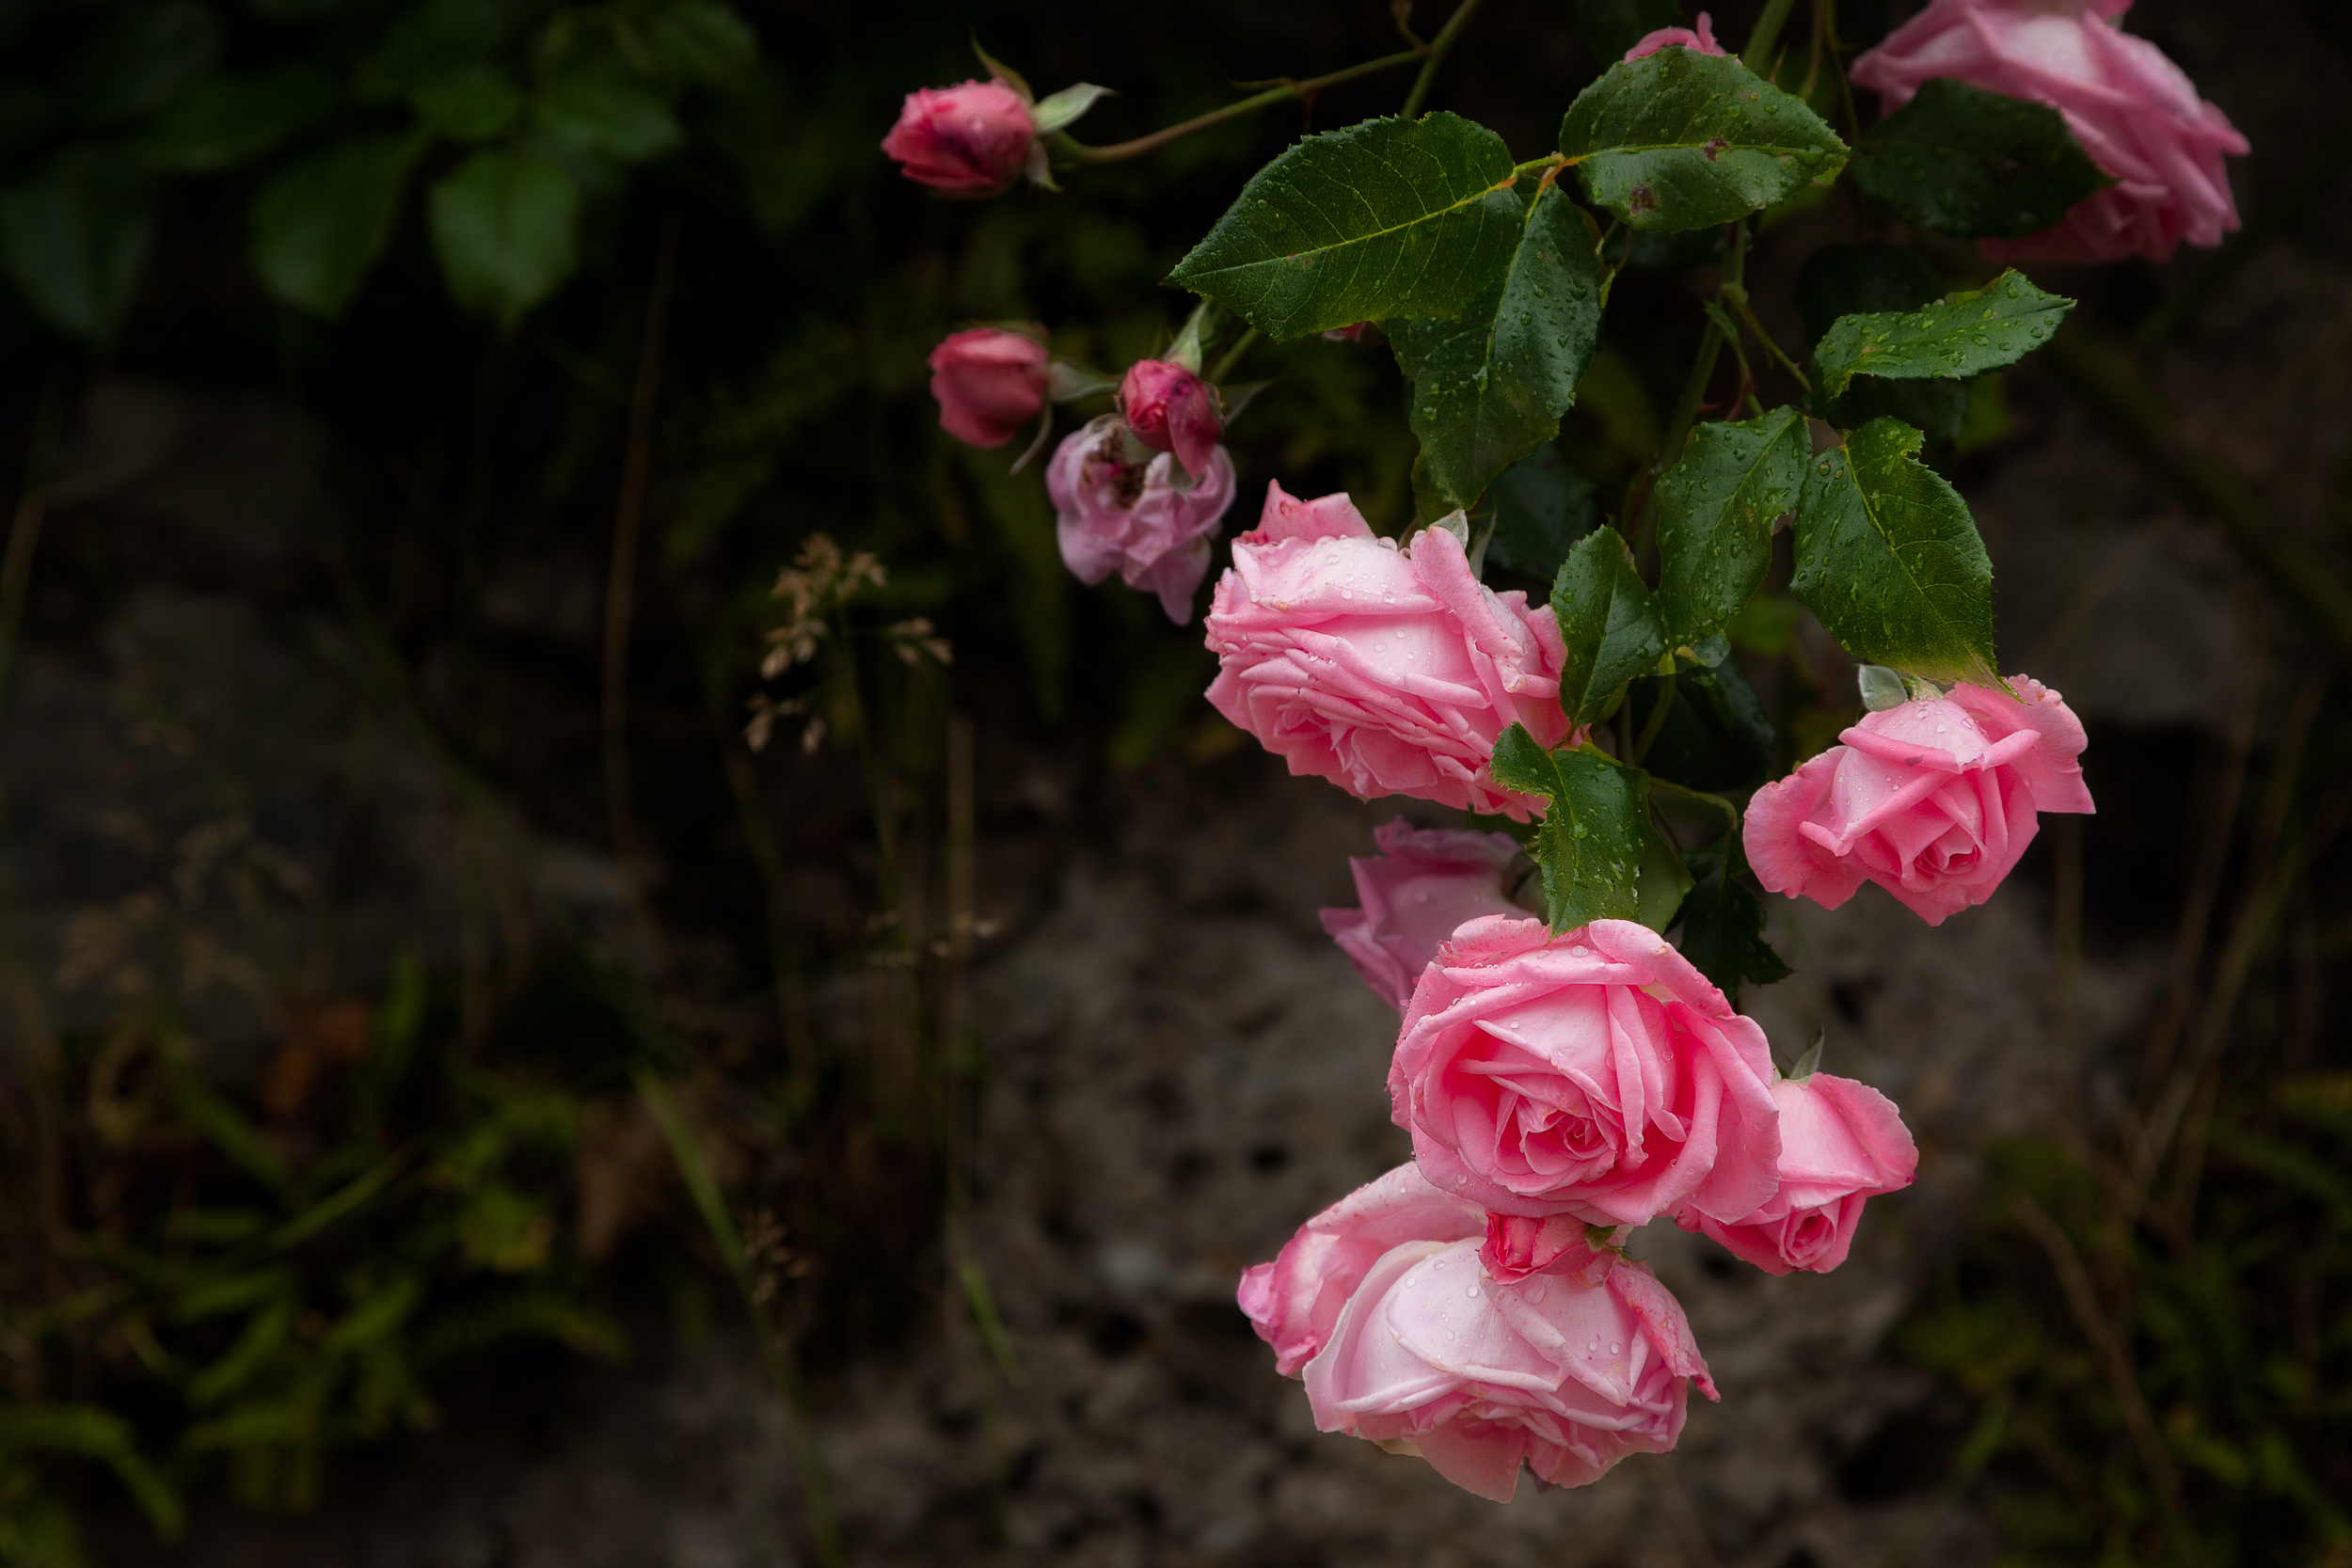 Pink roses , photographed after a rain storm, in the Mirabell Gardens in Salzburg, Austria .